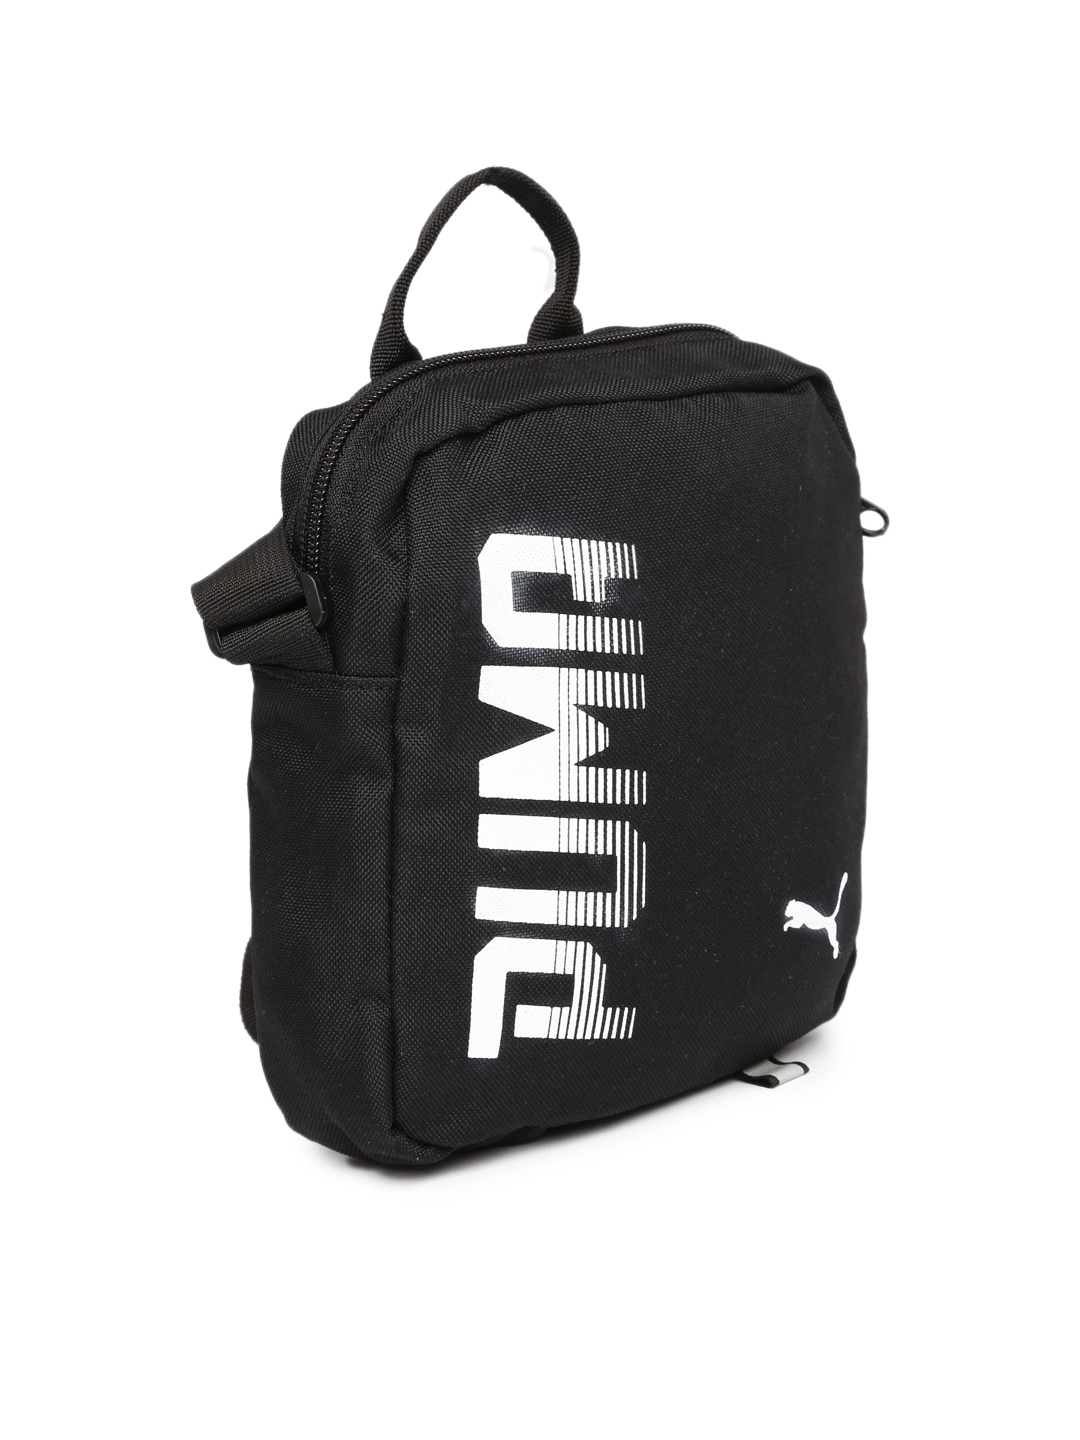 692ca01d34 Buy PUMA Unisex Black Pioneer Portable Bag - Travel Accessory for ...